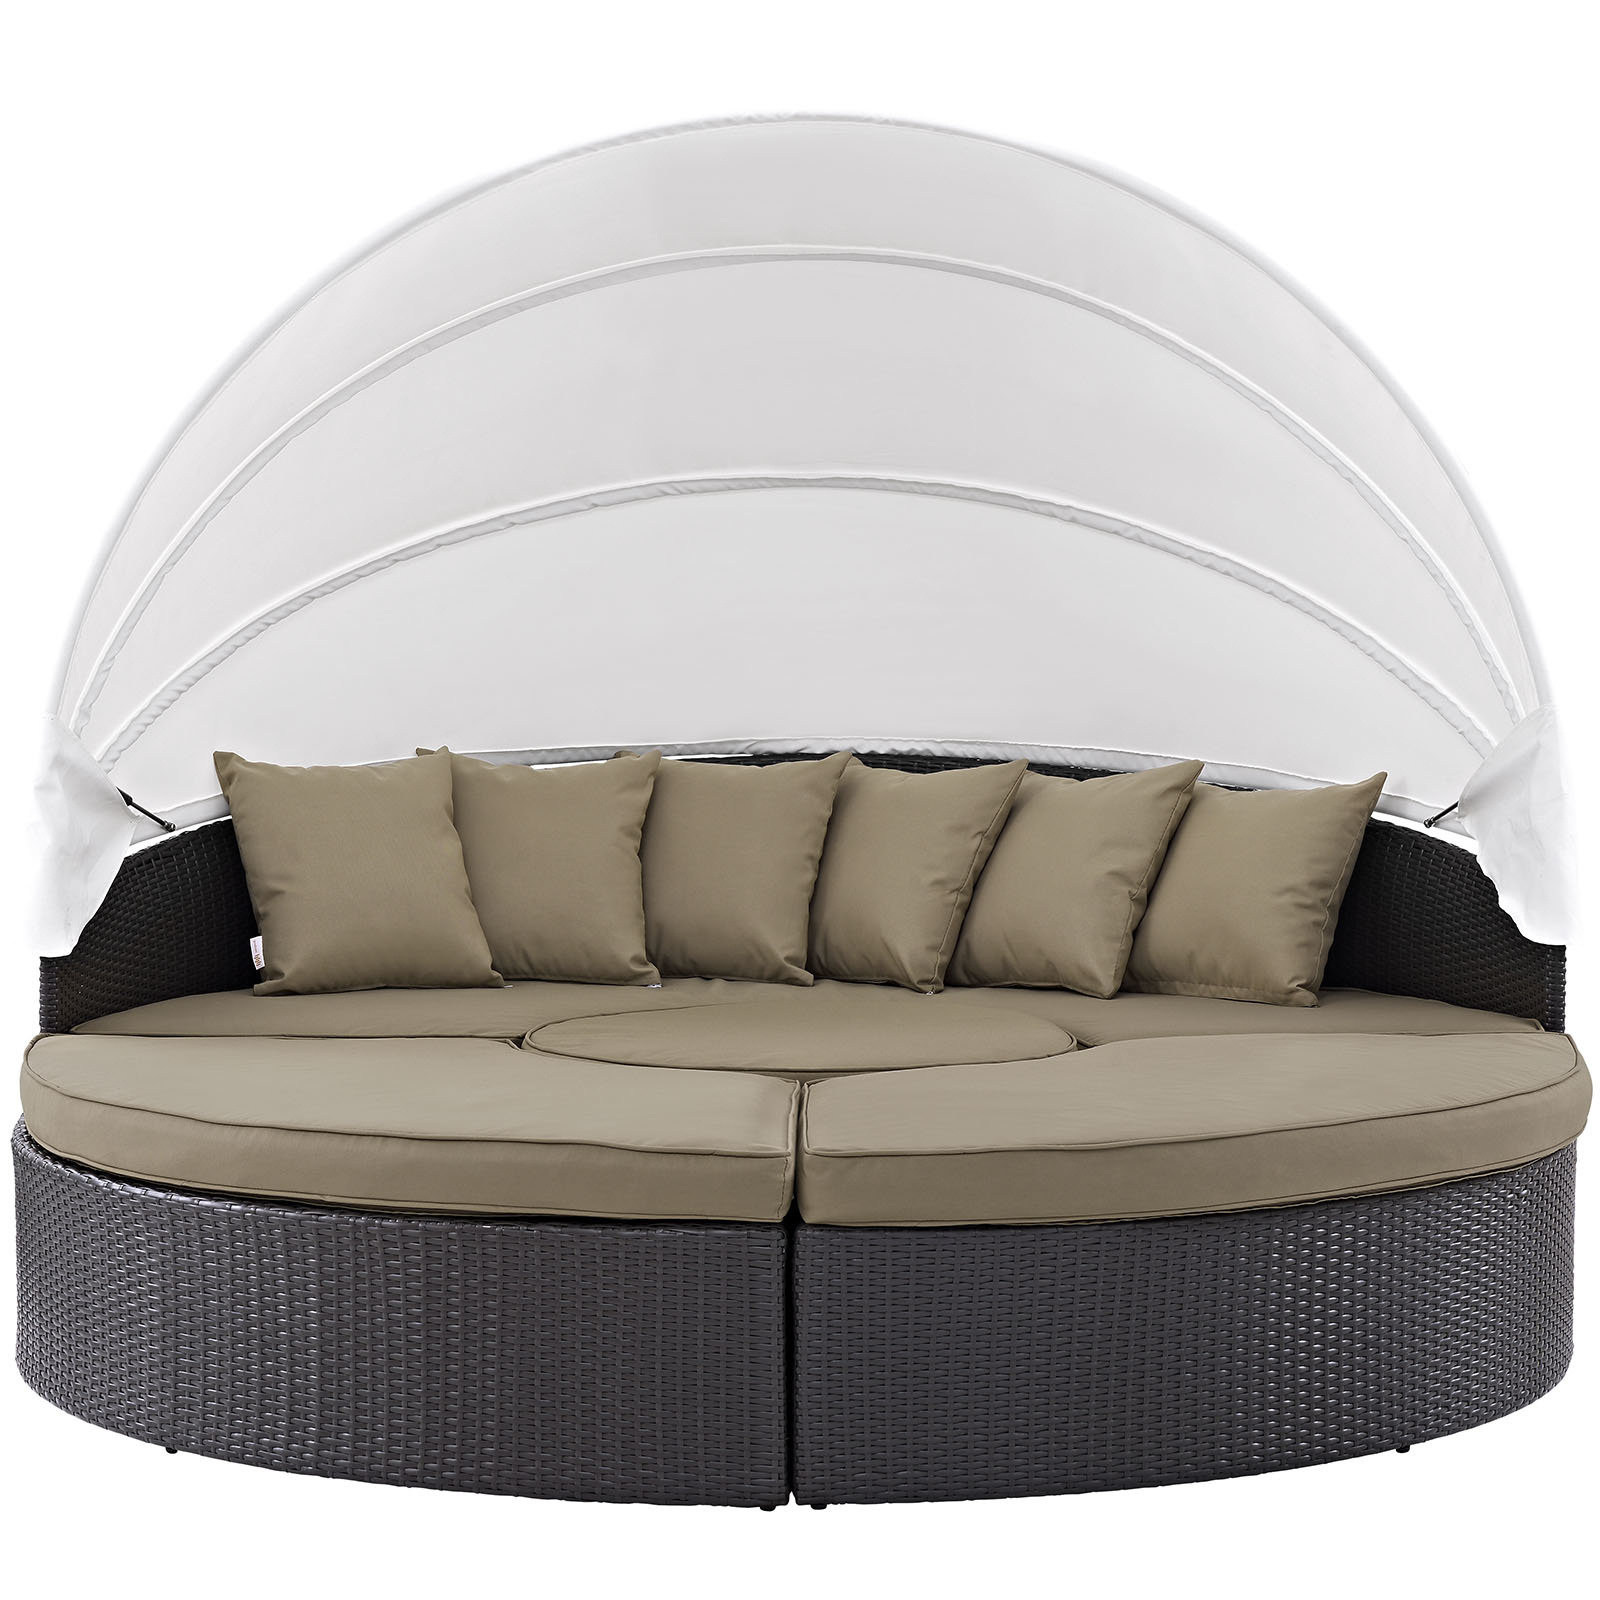 Current Harlow Patio Daybeds With Cushions Regarding Brentwood Patio Daybed With Cushions (View 4 of 20)